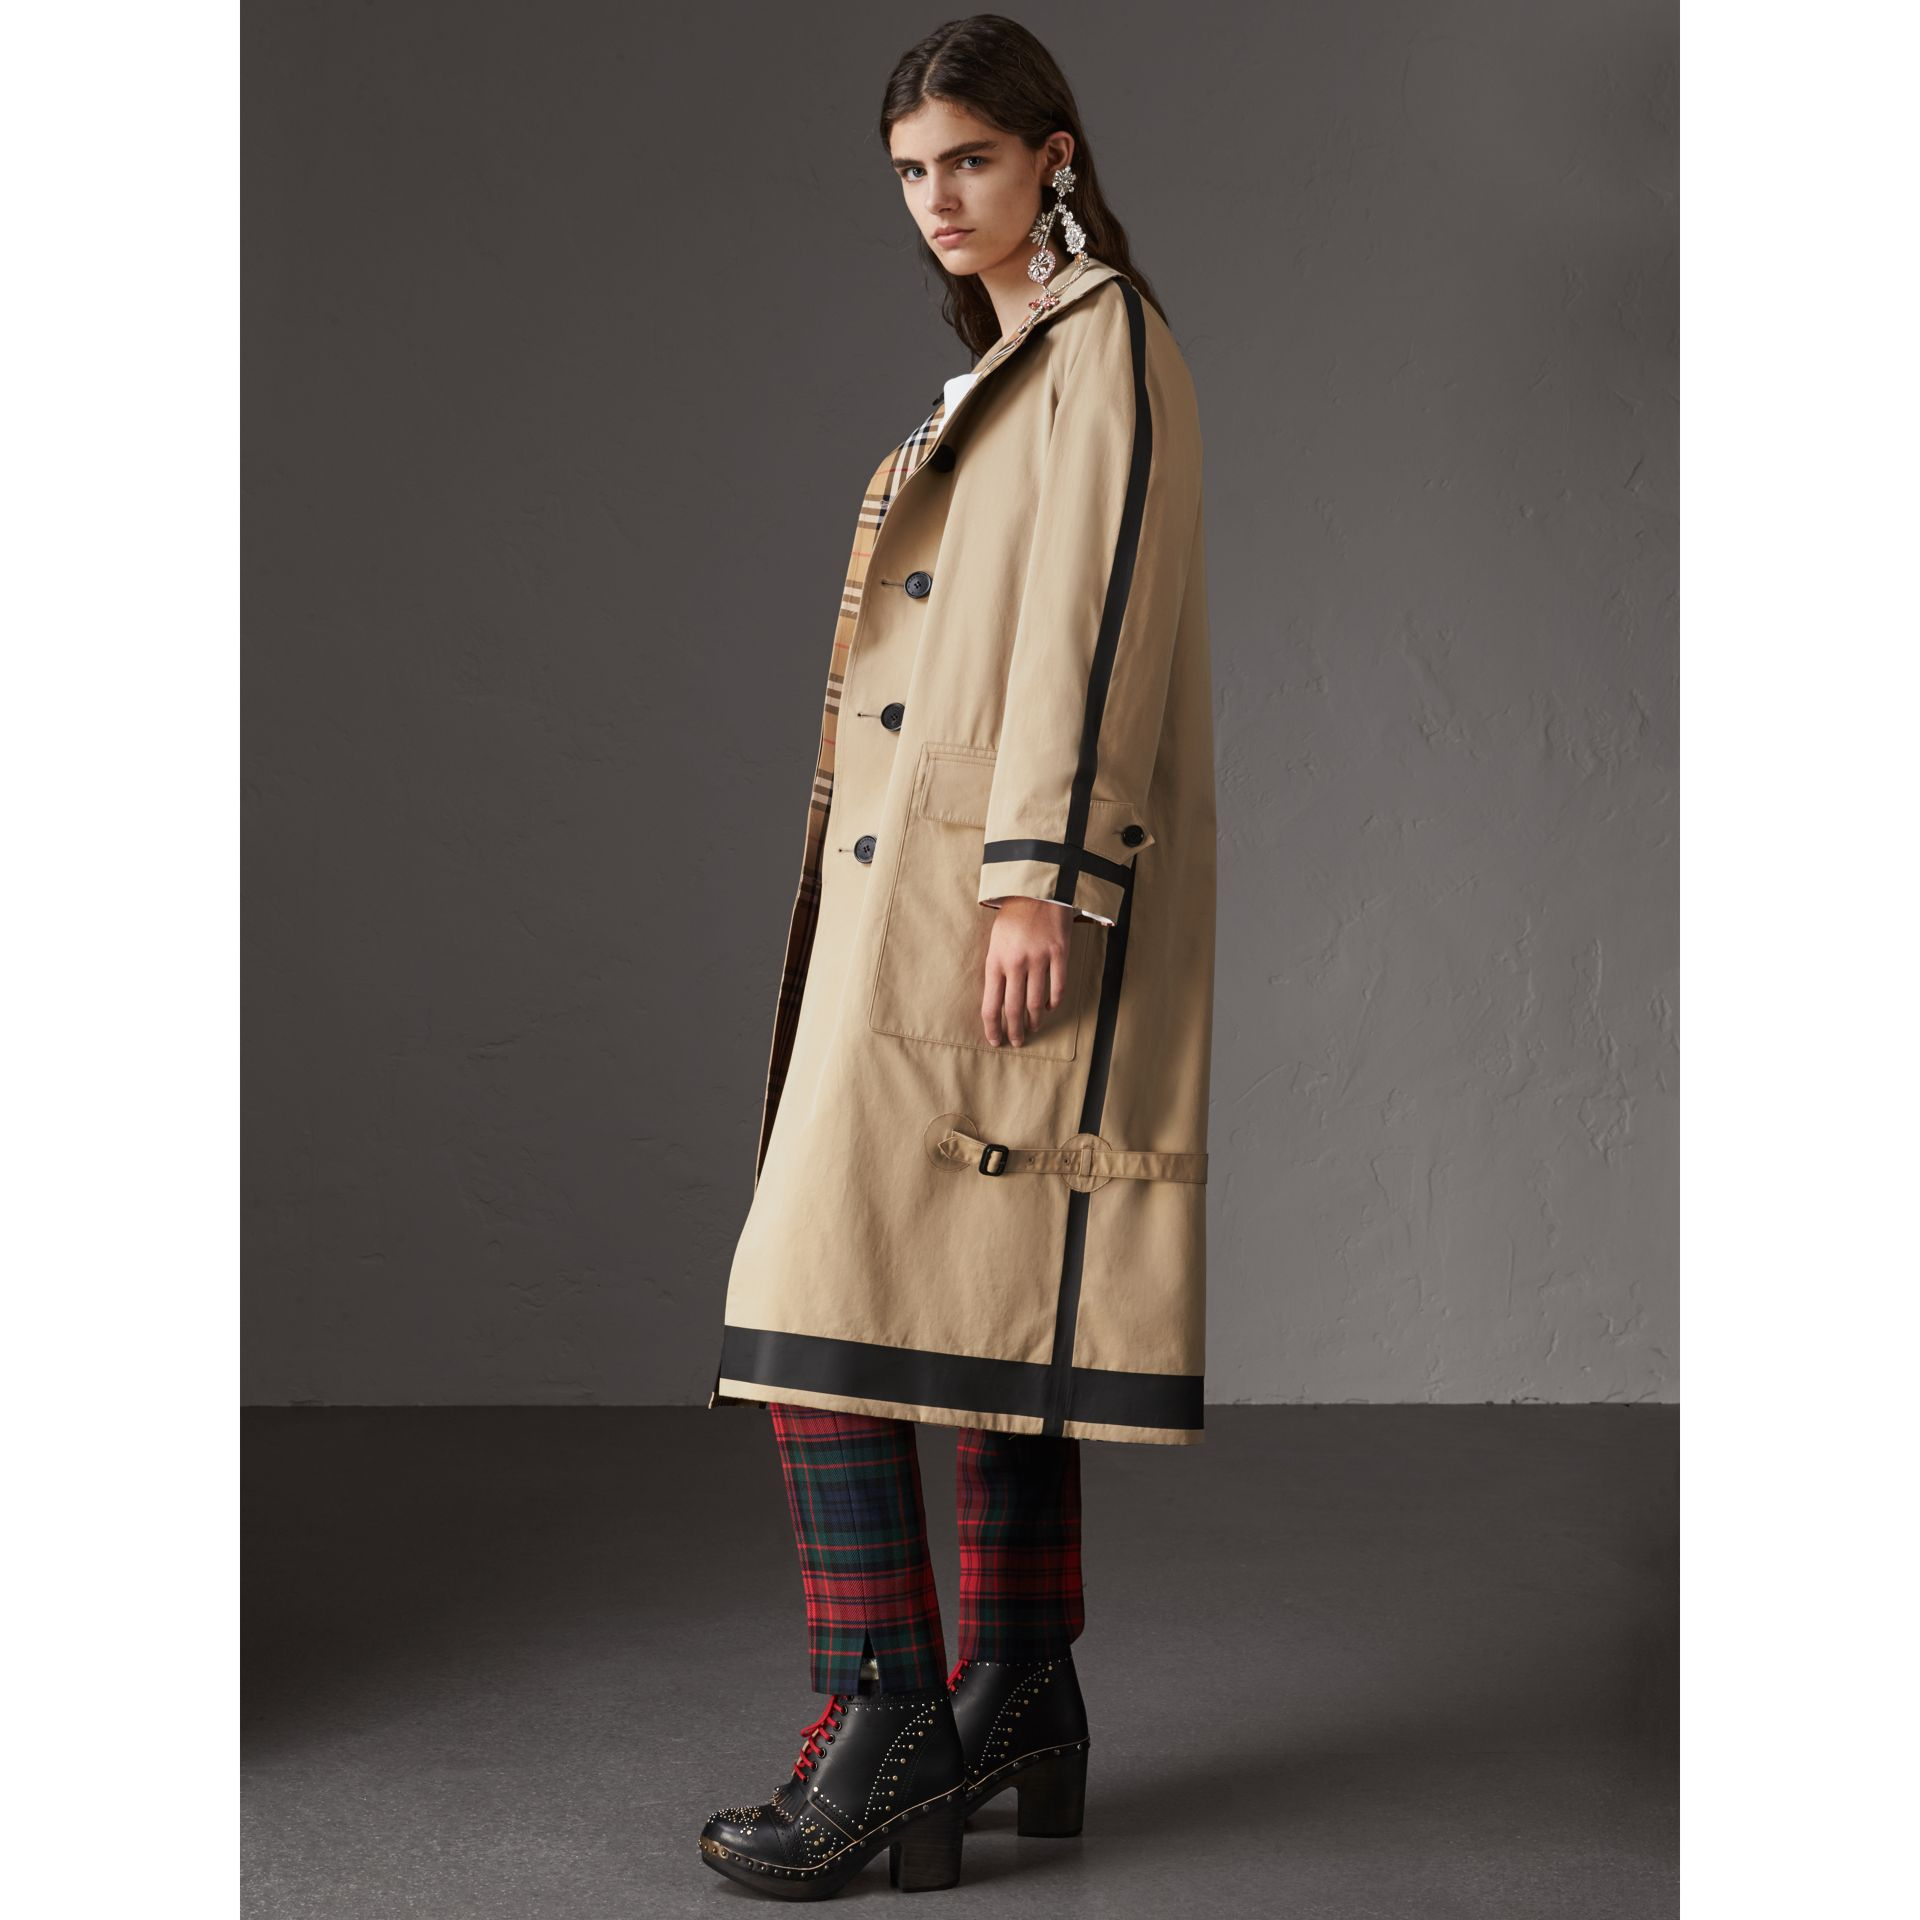 Cappotto car coat double face in gabardine con motivo Vintage check (Giallo Antico) - Donna | Burberry - immagine della galleria 5